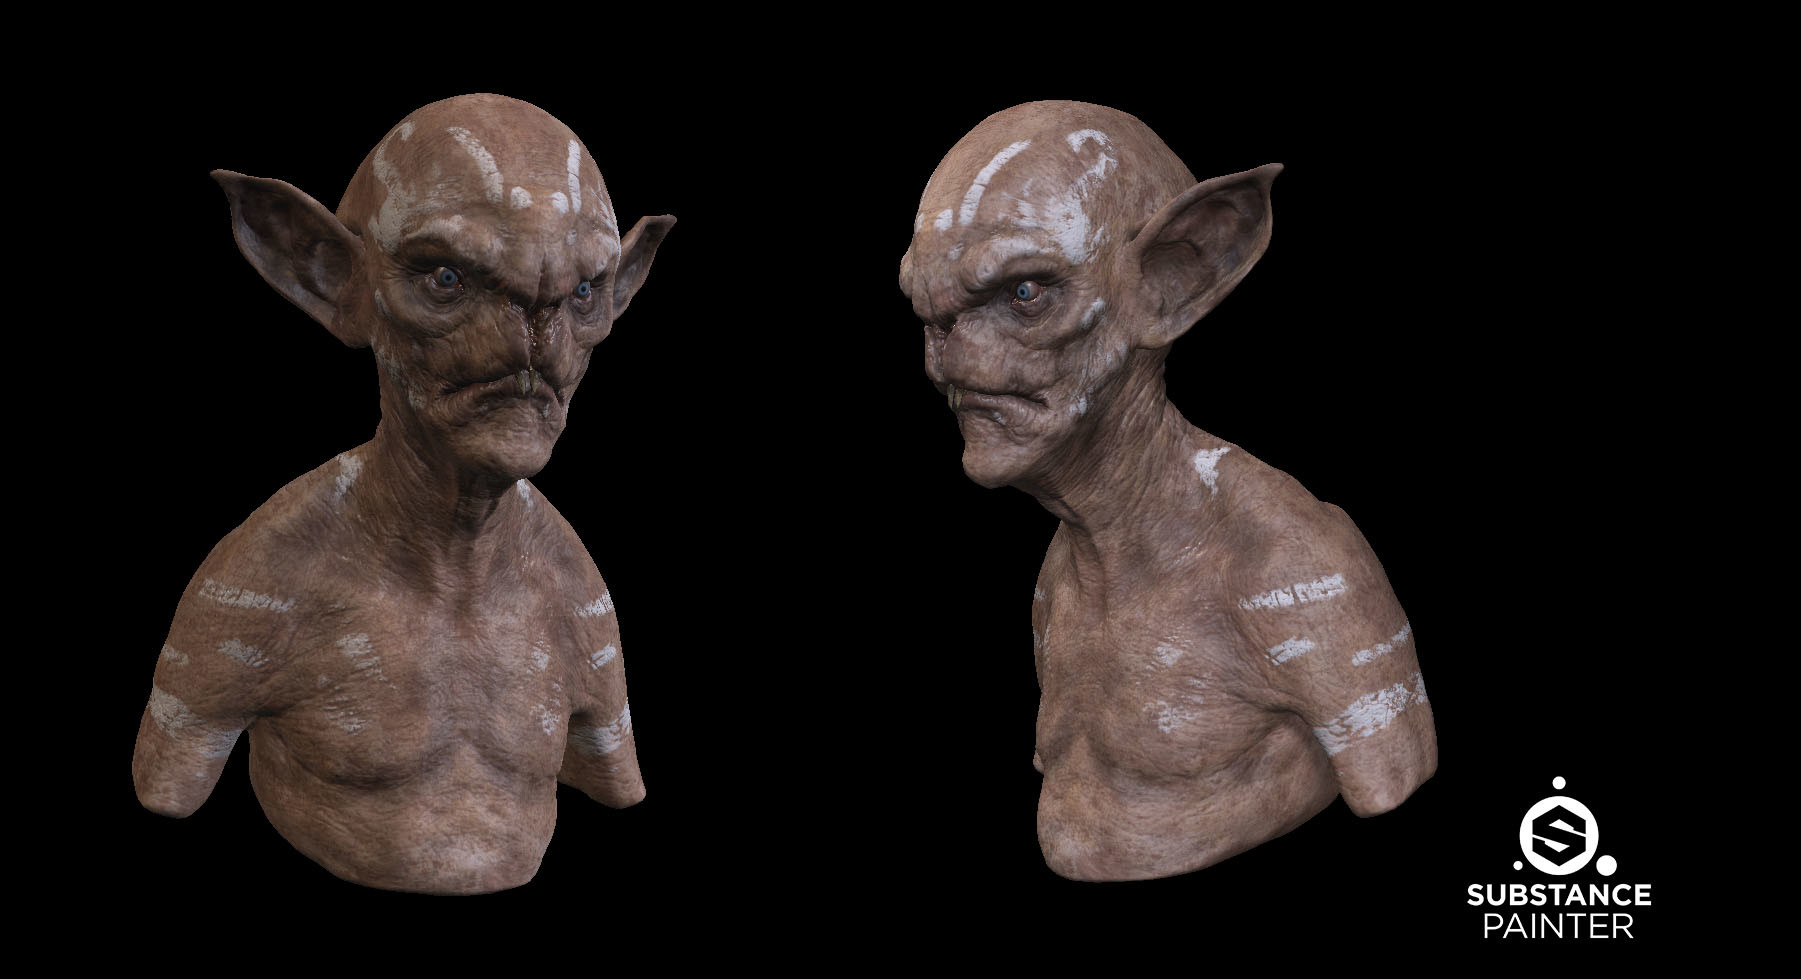 Daniel bystedt painted goblin substance painter